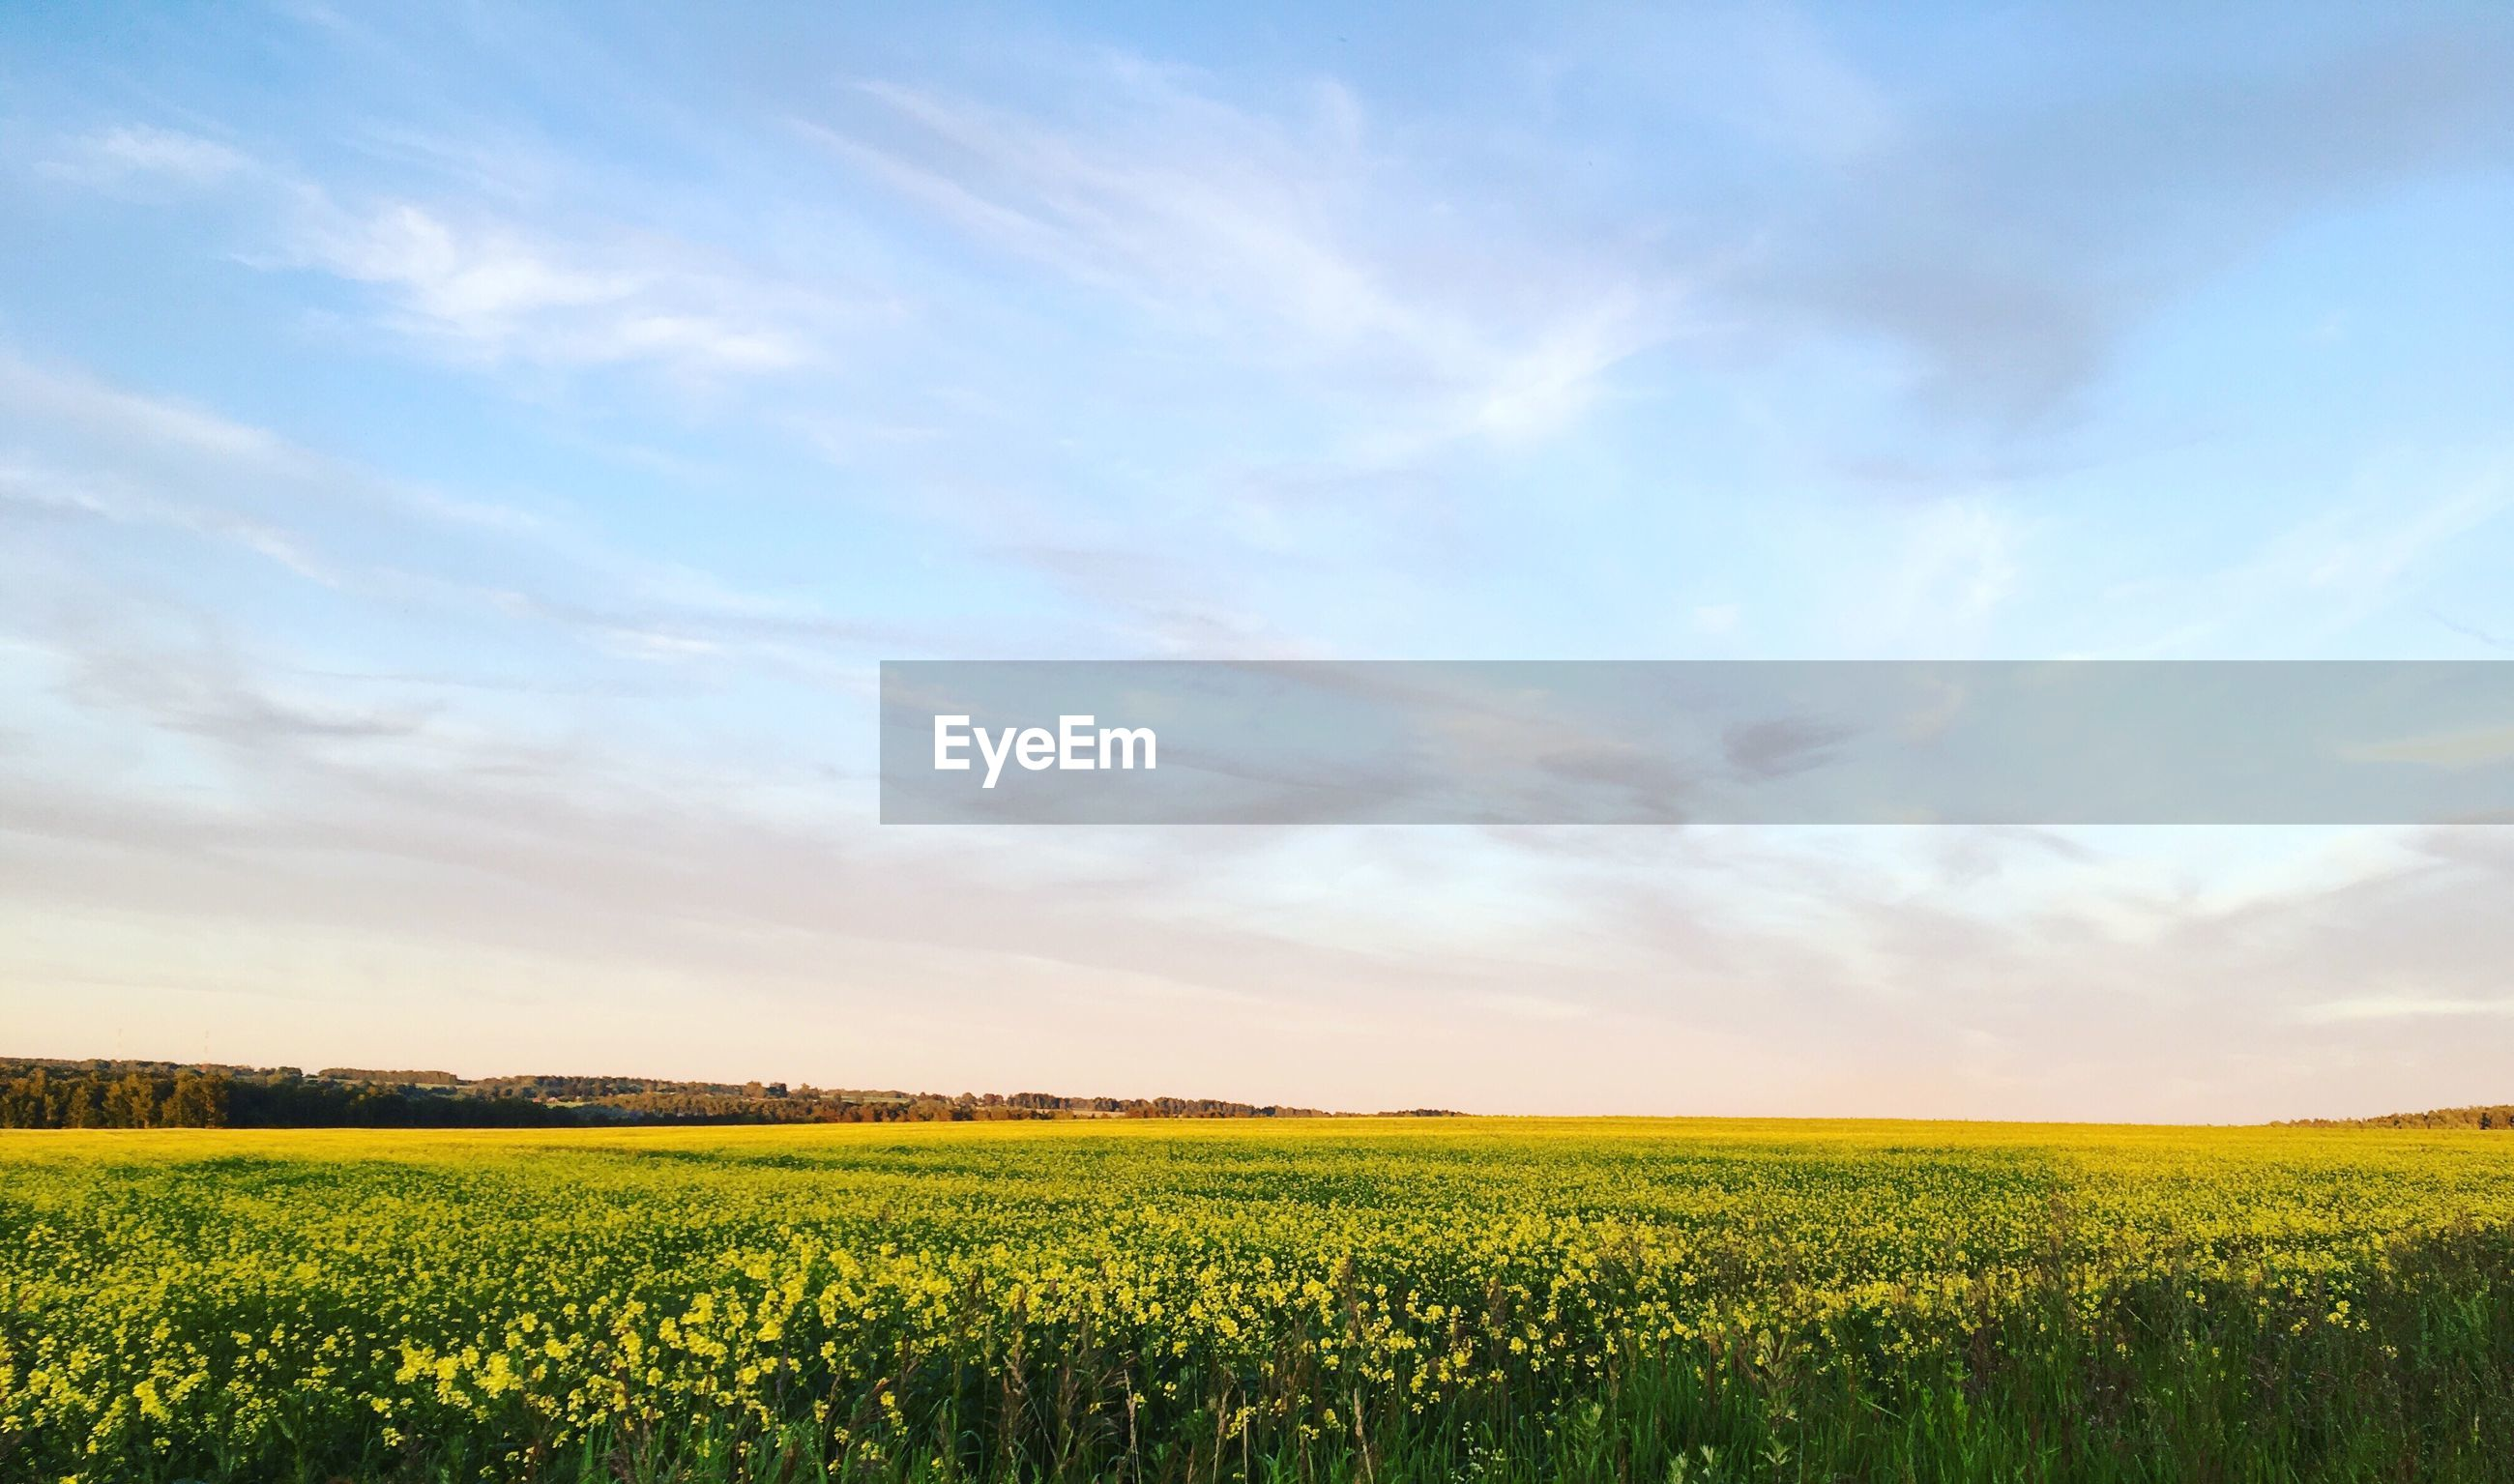 SCENIC VIEW OF CROP FIELD AGAINST SKY